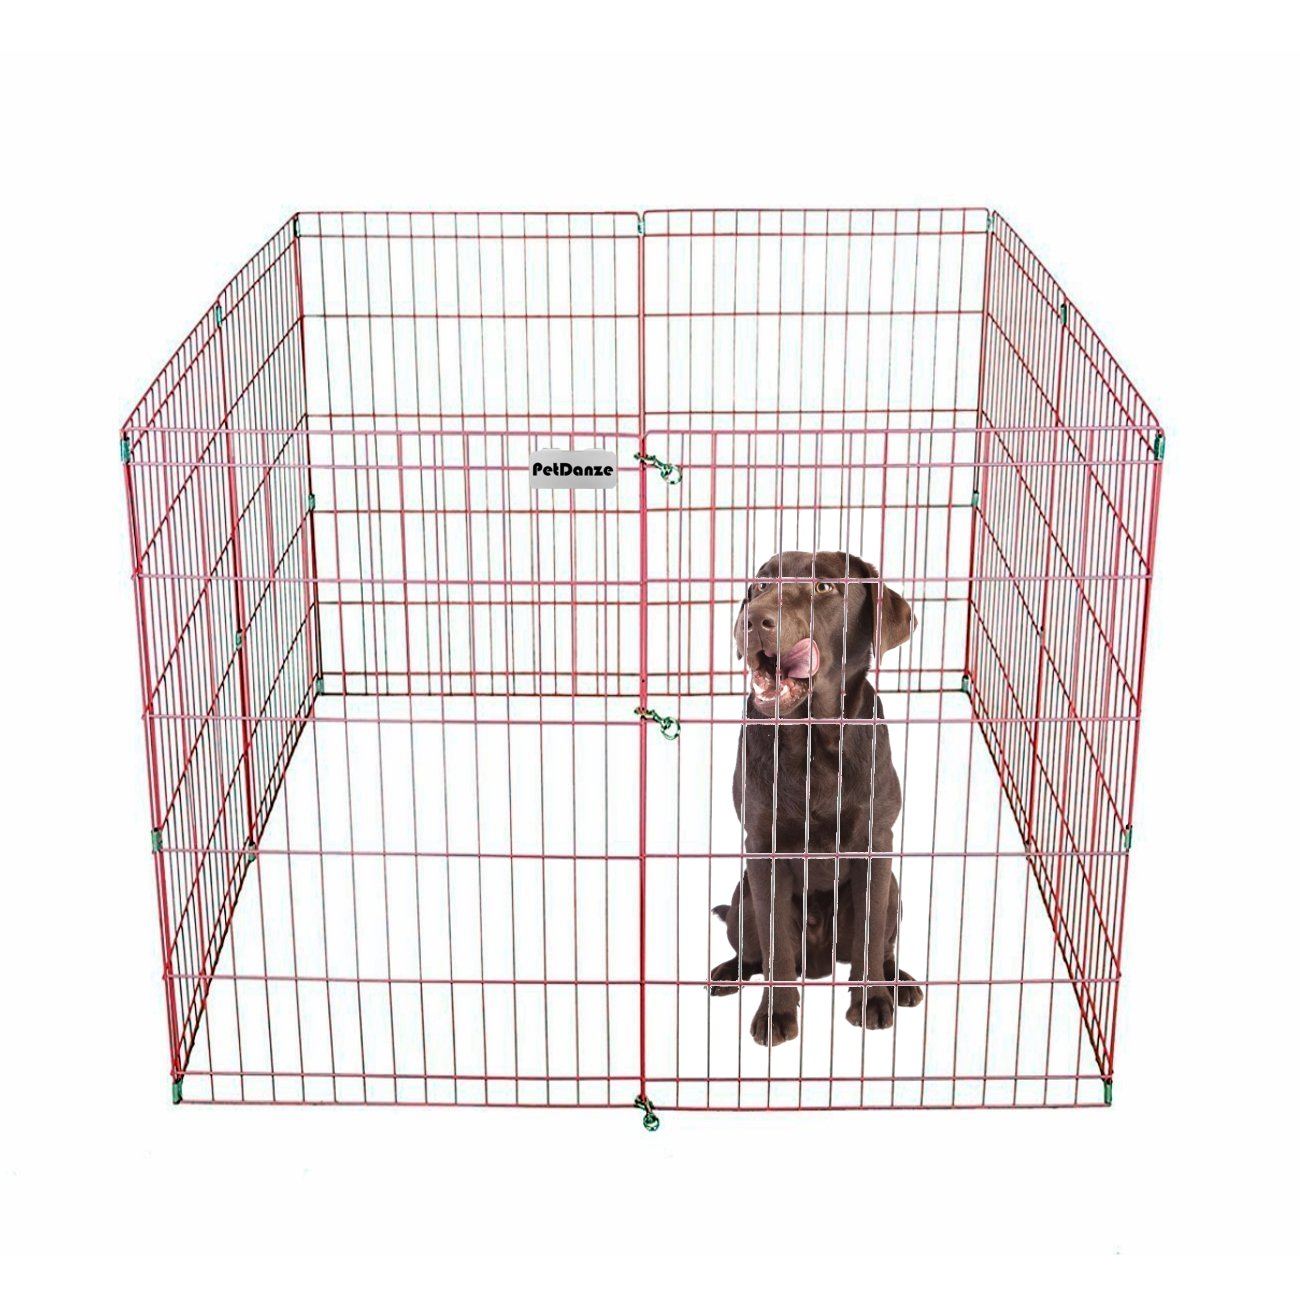 PetDanze Dog Puppy Playpen Pen 36'' Height | Indoor Outdoor Exercise Outside Play Yard | Pet Small Animal Puppies Portable Foldable Fence Enclosures | 8 Panel Metal Wire, Pink